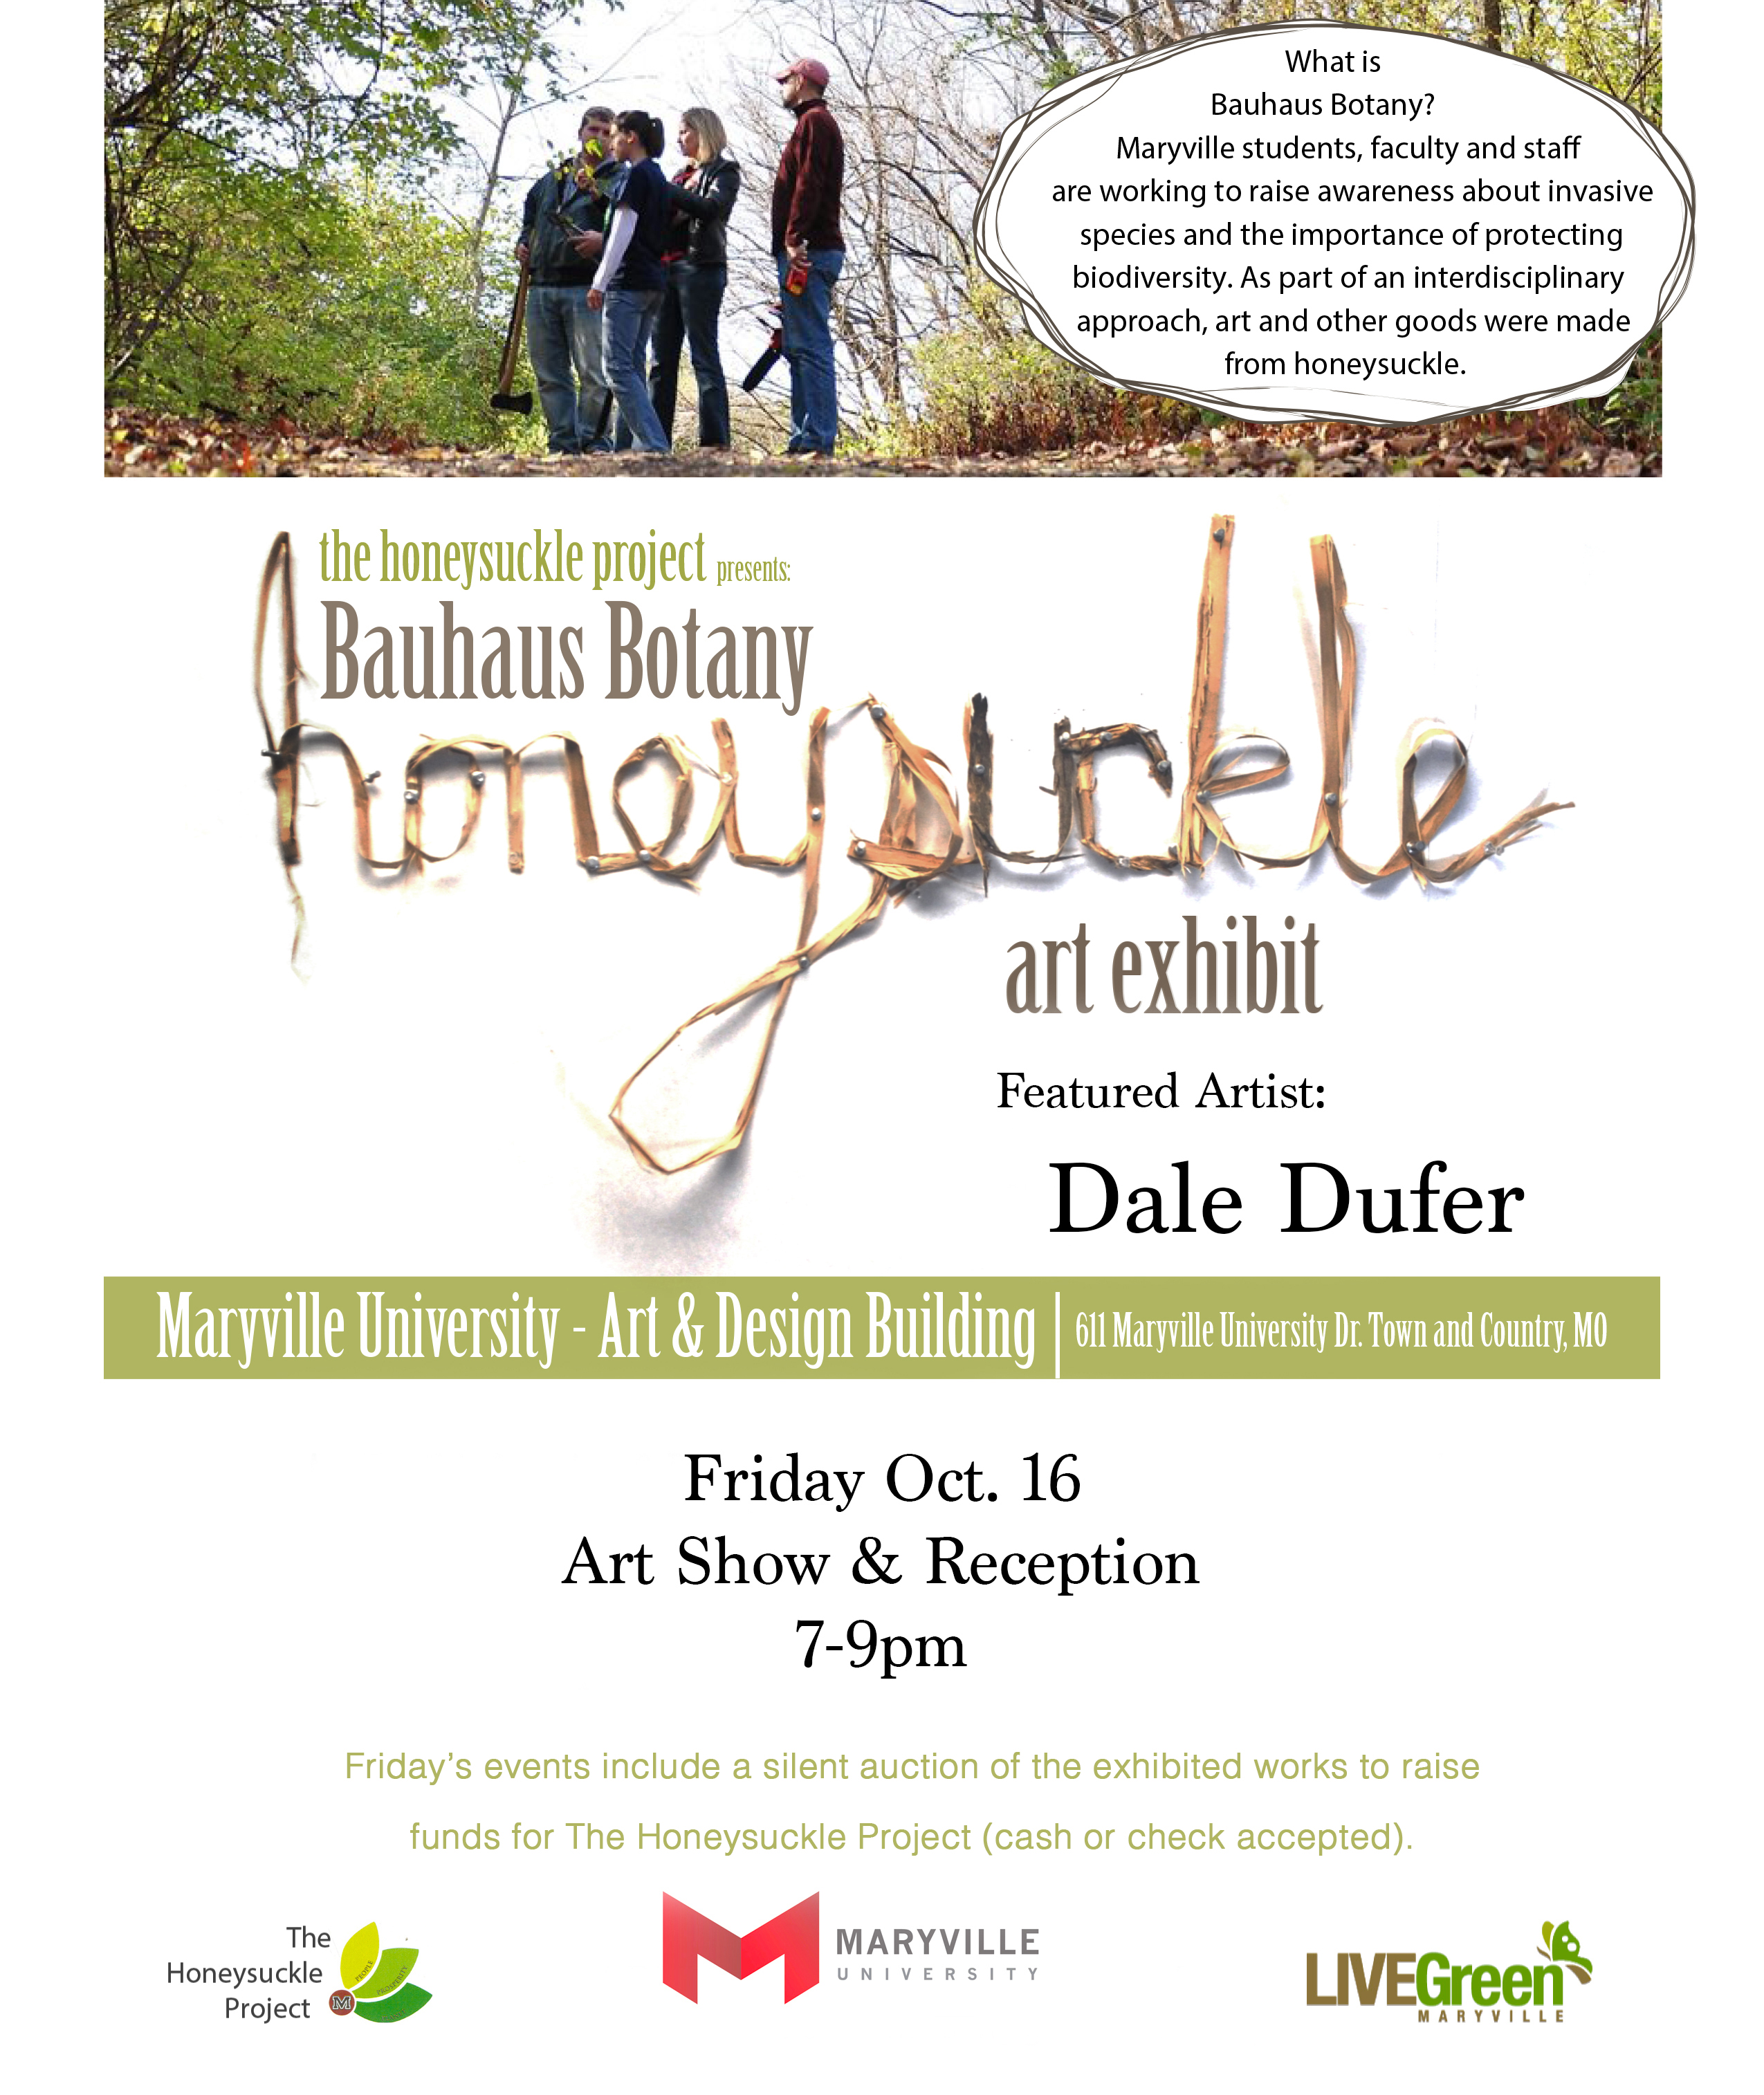 Honeysuckle Art Exhibit